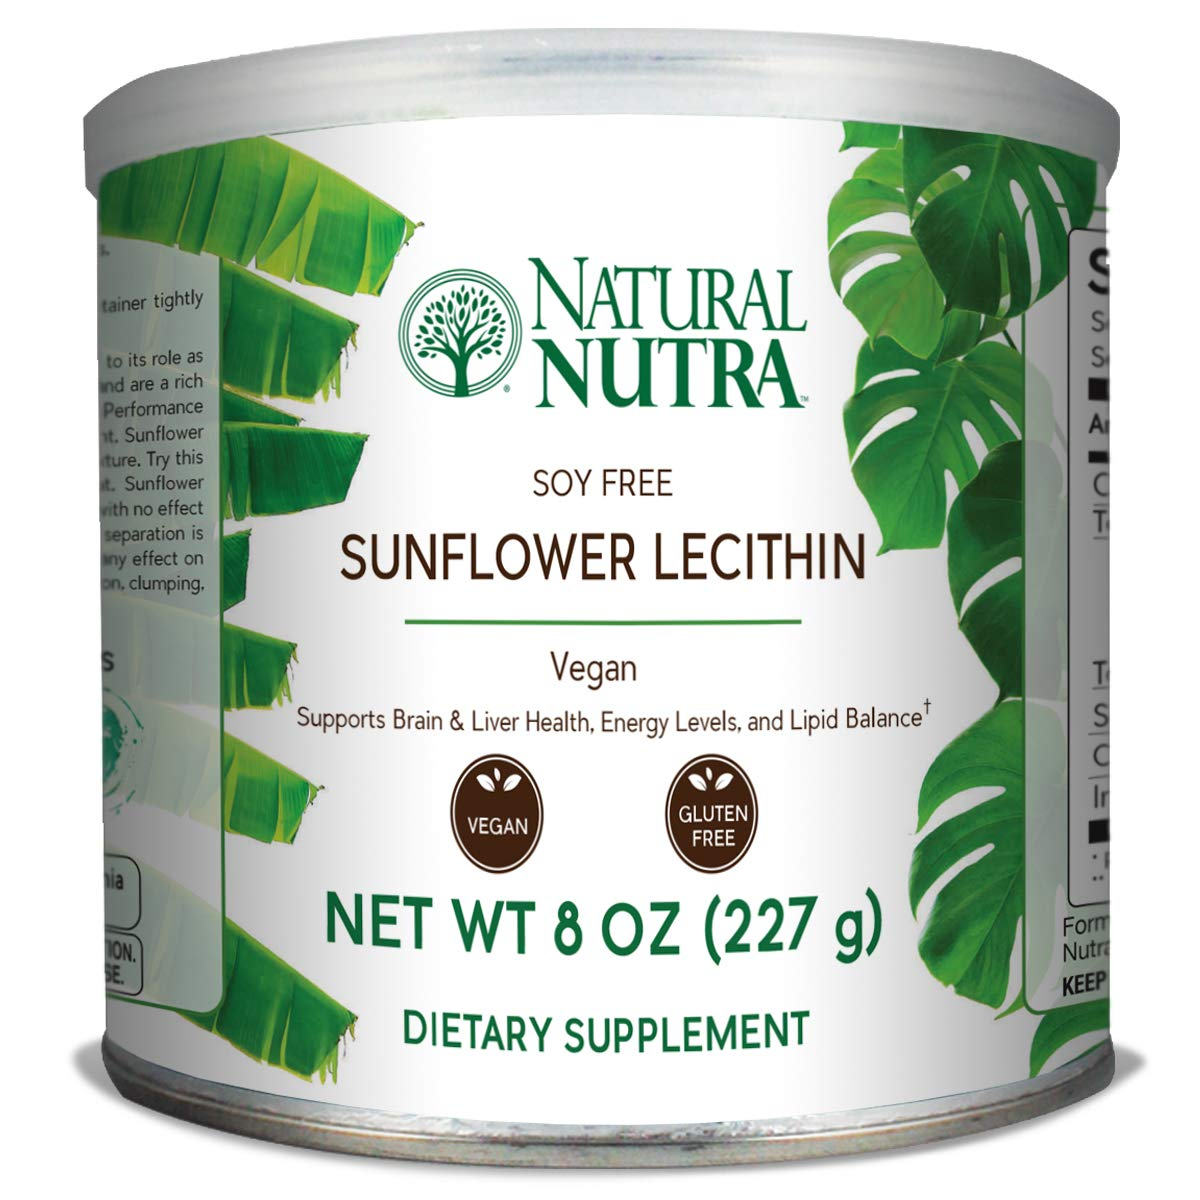 Natural Nutra Sunflower Lecithin Powder, Non GMO, Soy Free with Inositol, Omega 3-6 and Choline, 8 oz Vegan Supplement